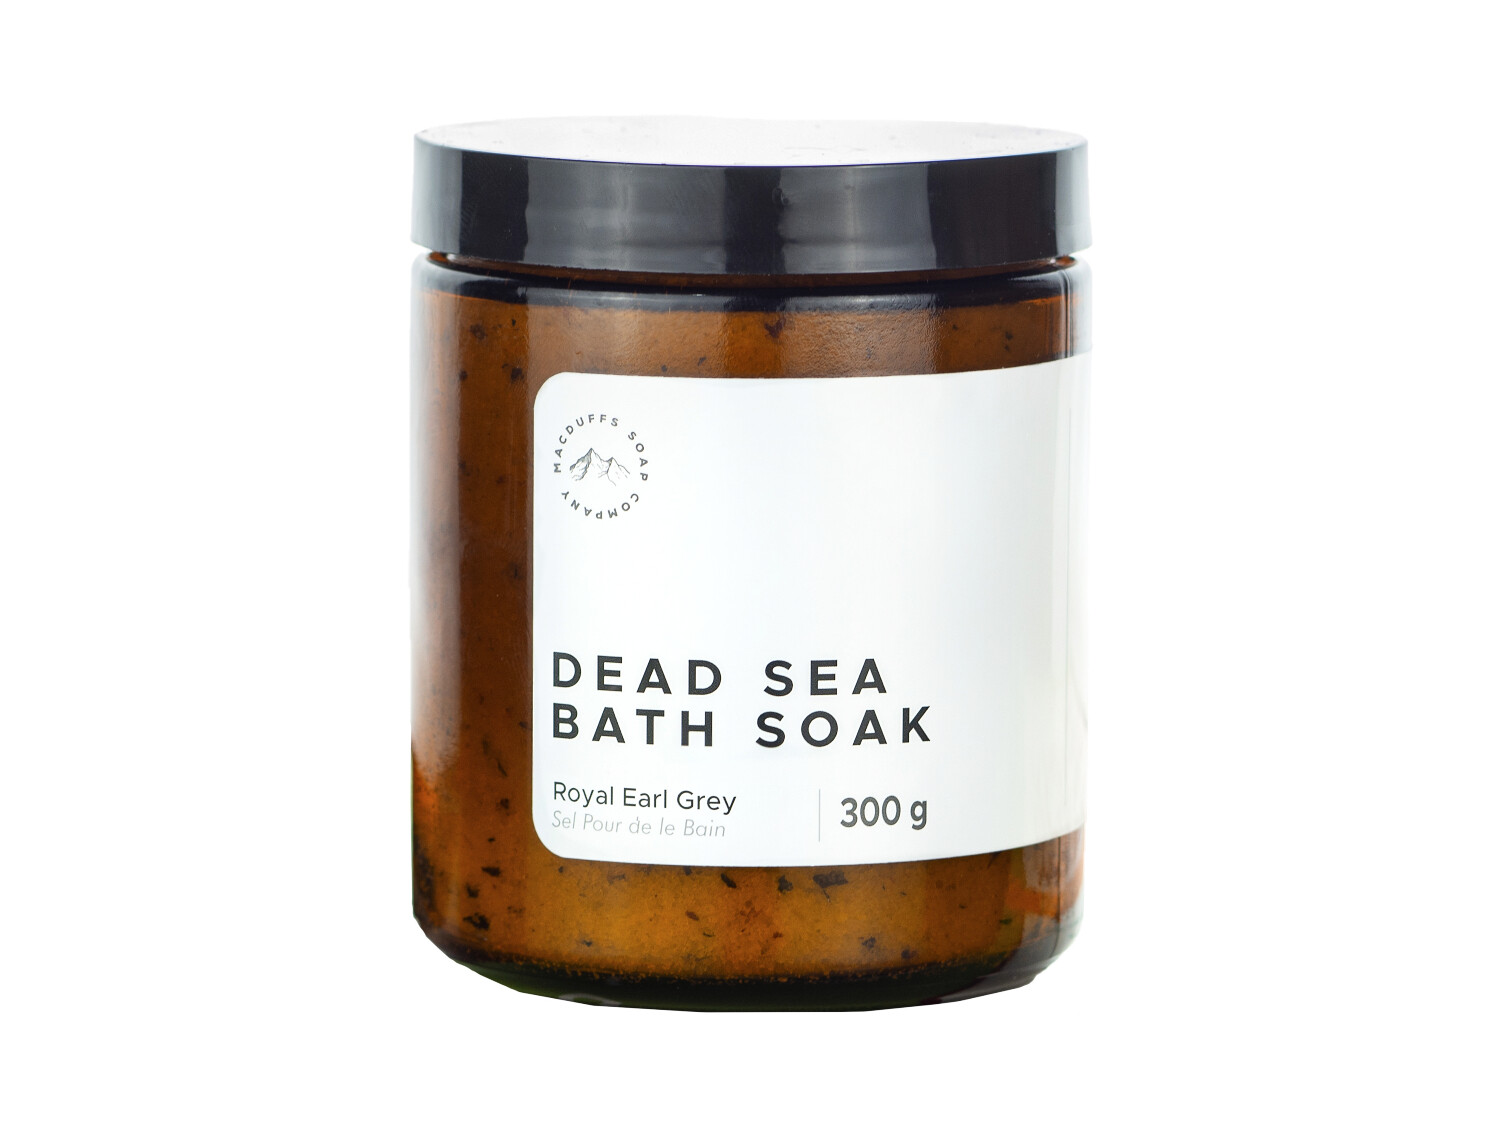 Royal Earl Grey Dead Sea Bath Soak